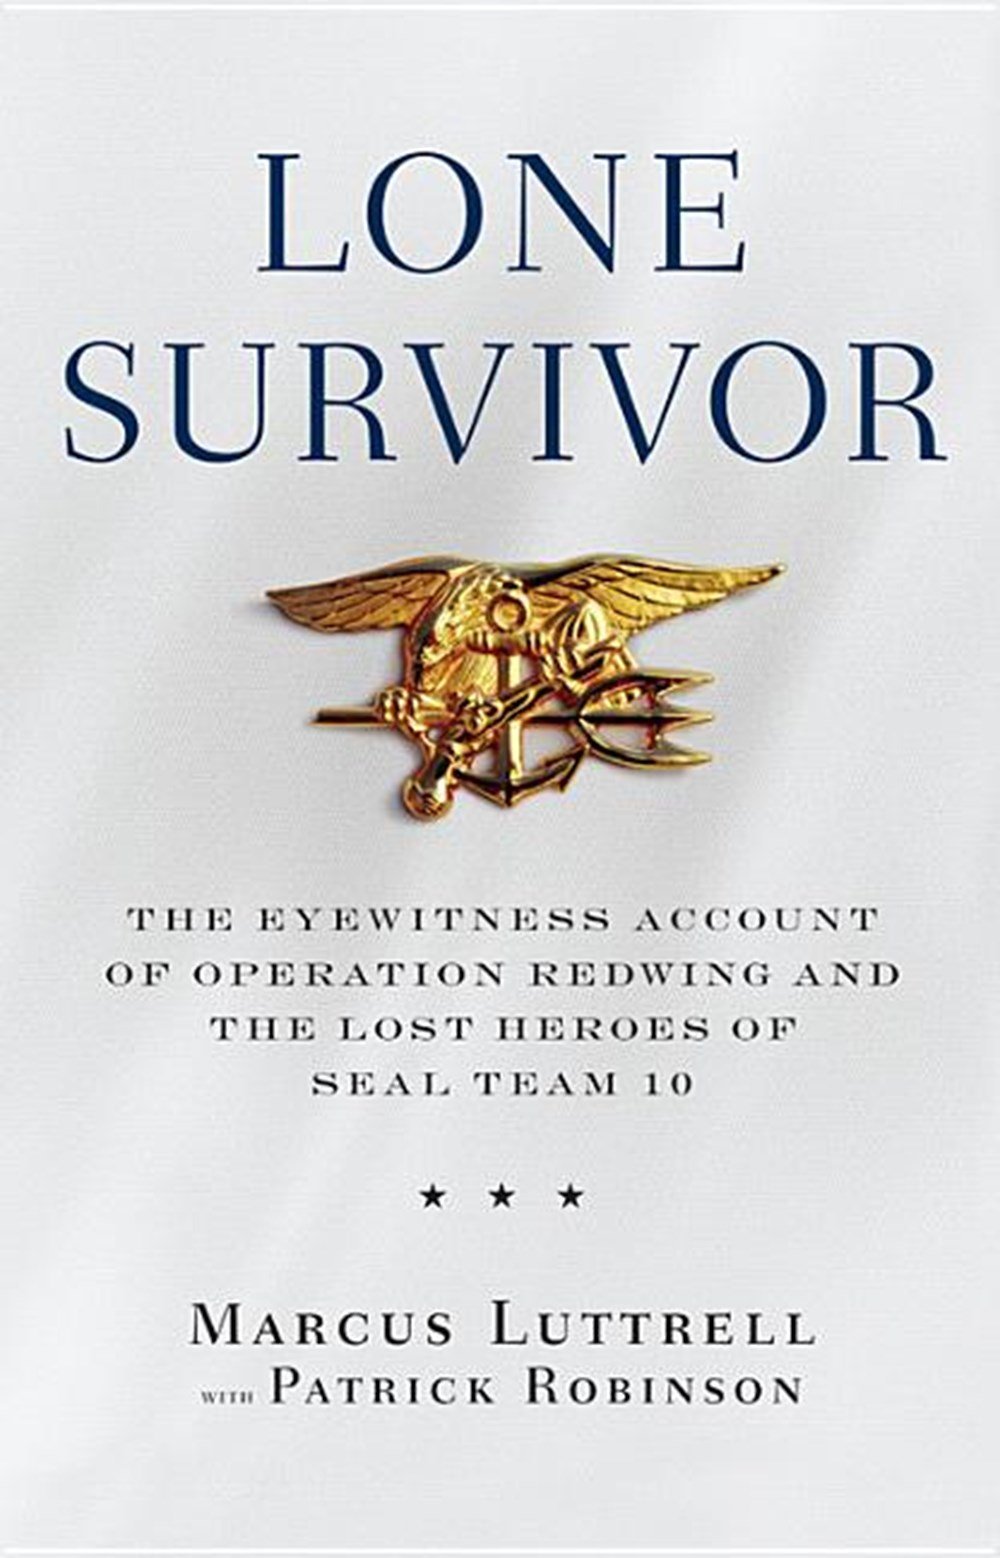 Lone Survivor The Eyewitness Account of Operation Redwing and the Lost Heroes of SEAL Team 10 (Bound